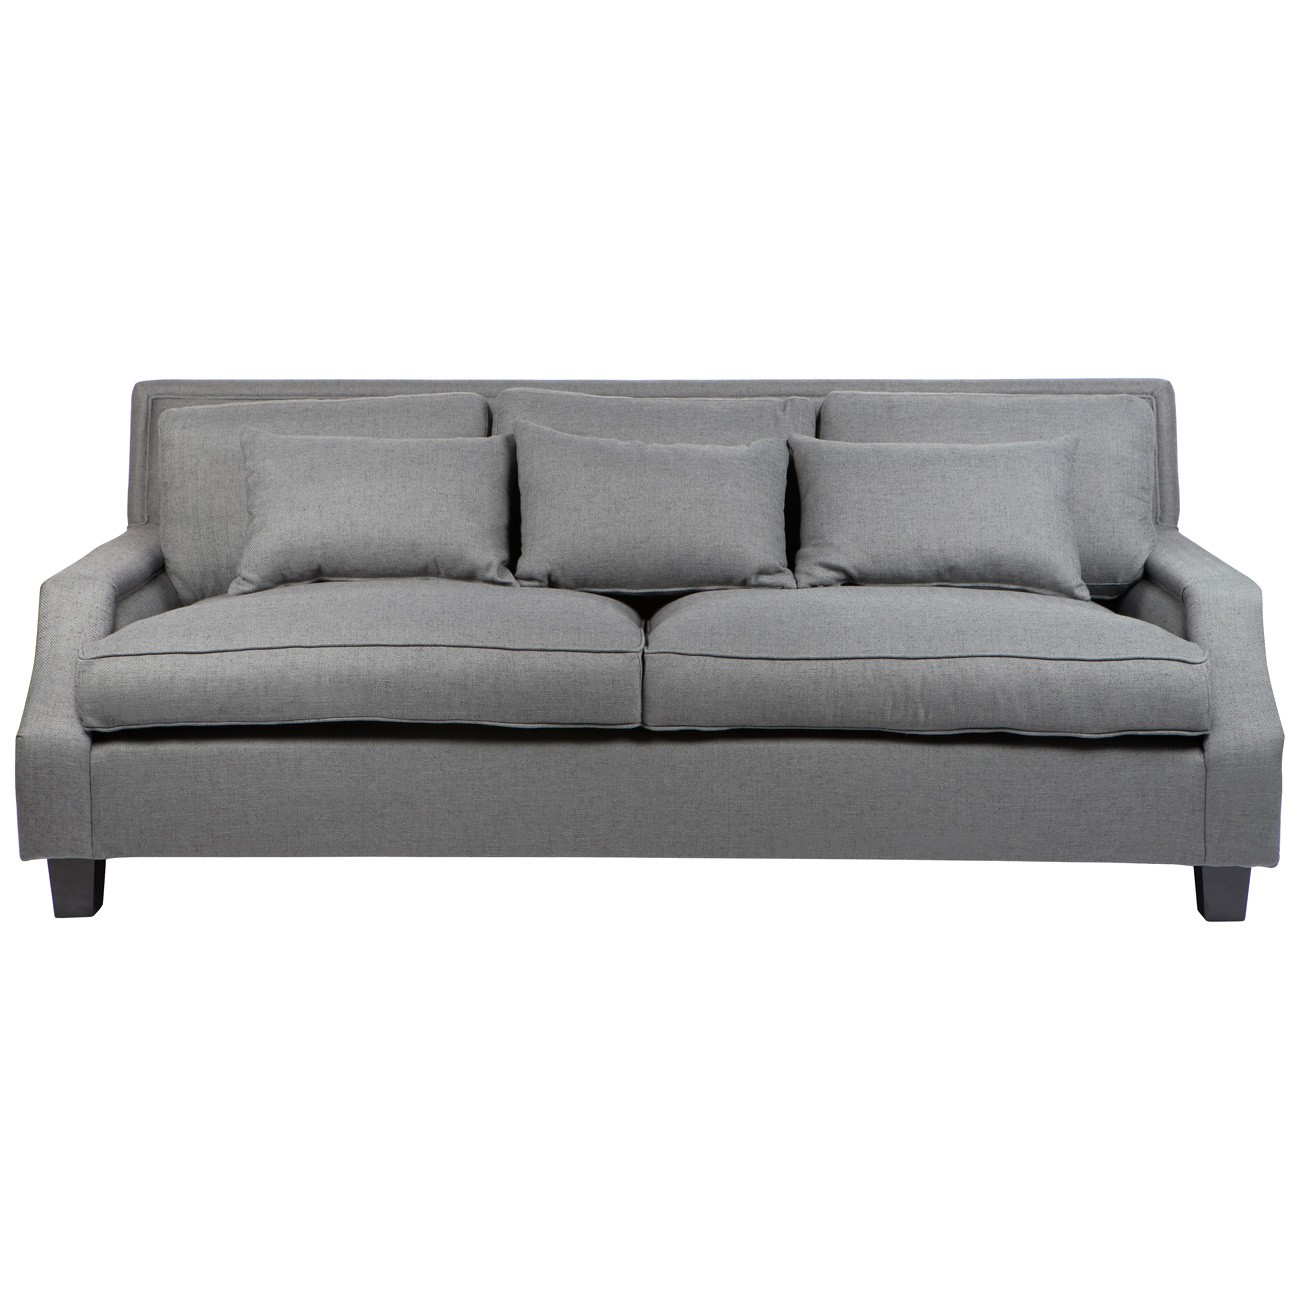 Riley Fabric 3 Seater Sofa, Grey